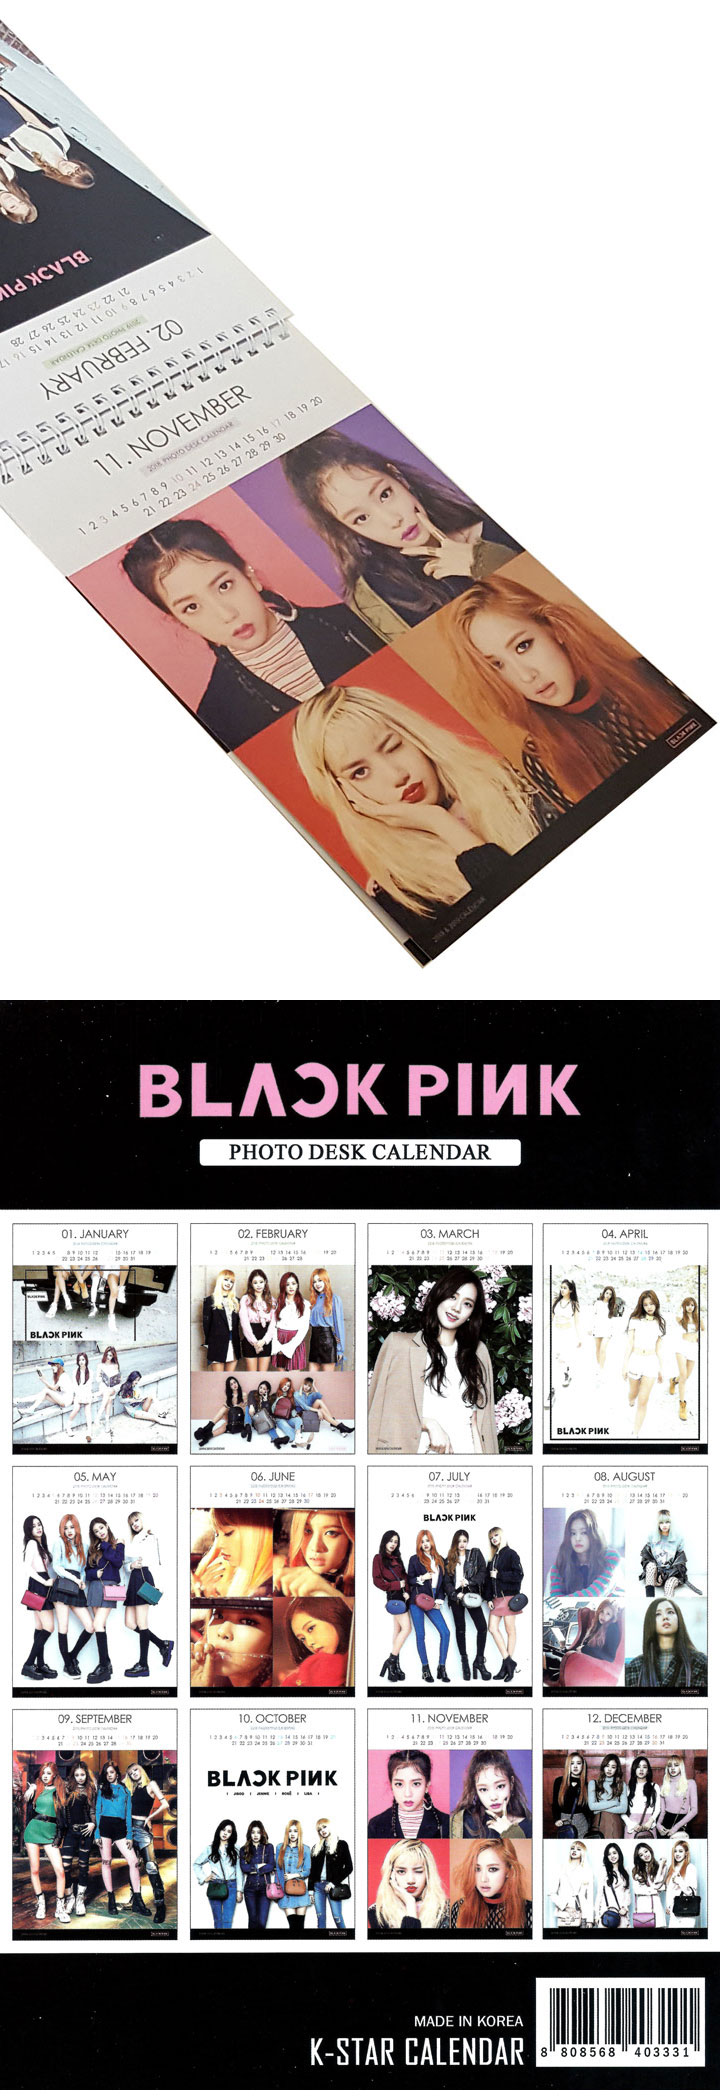 【BLACK PINK】ブラックピンク 2018/2019卓上カレンダー 新入荷